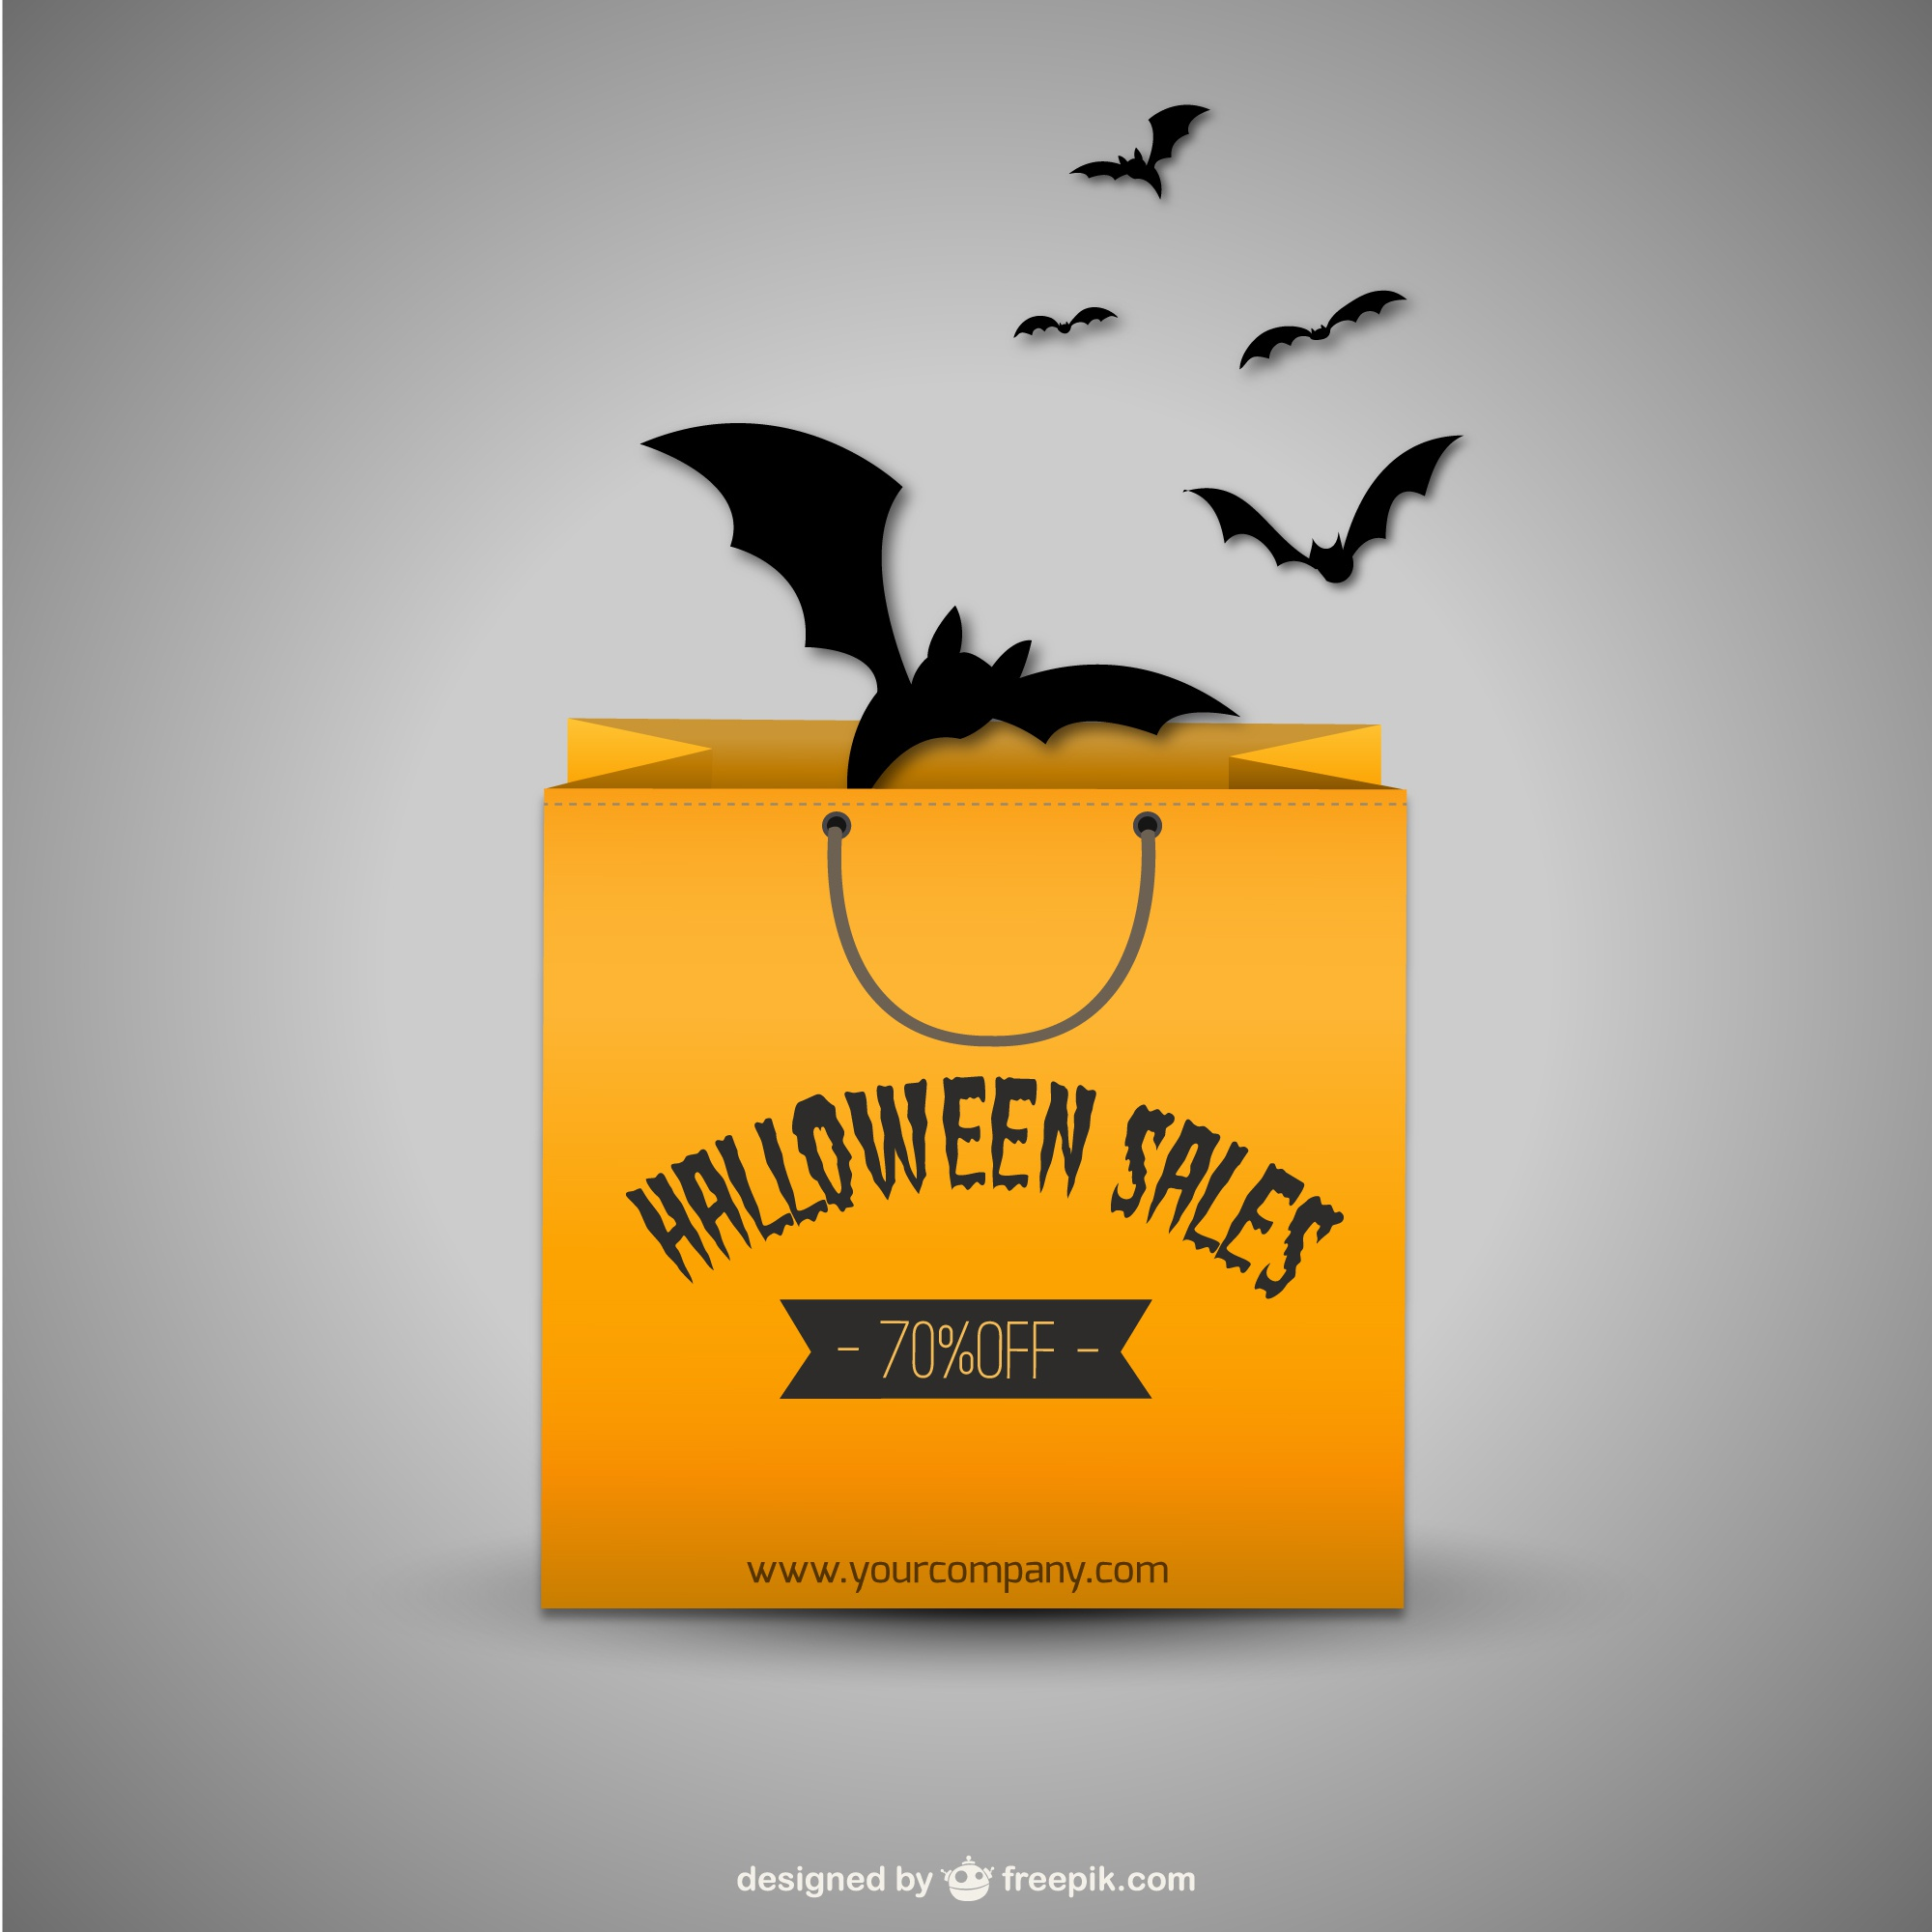 Halloween sales vector with shopping bag